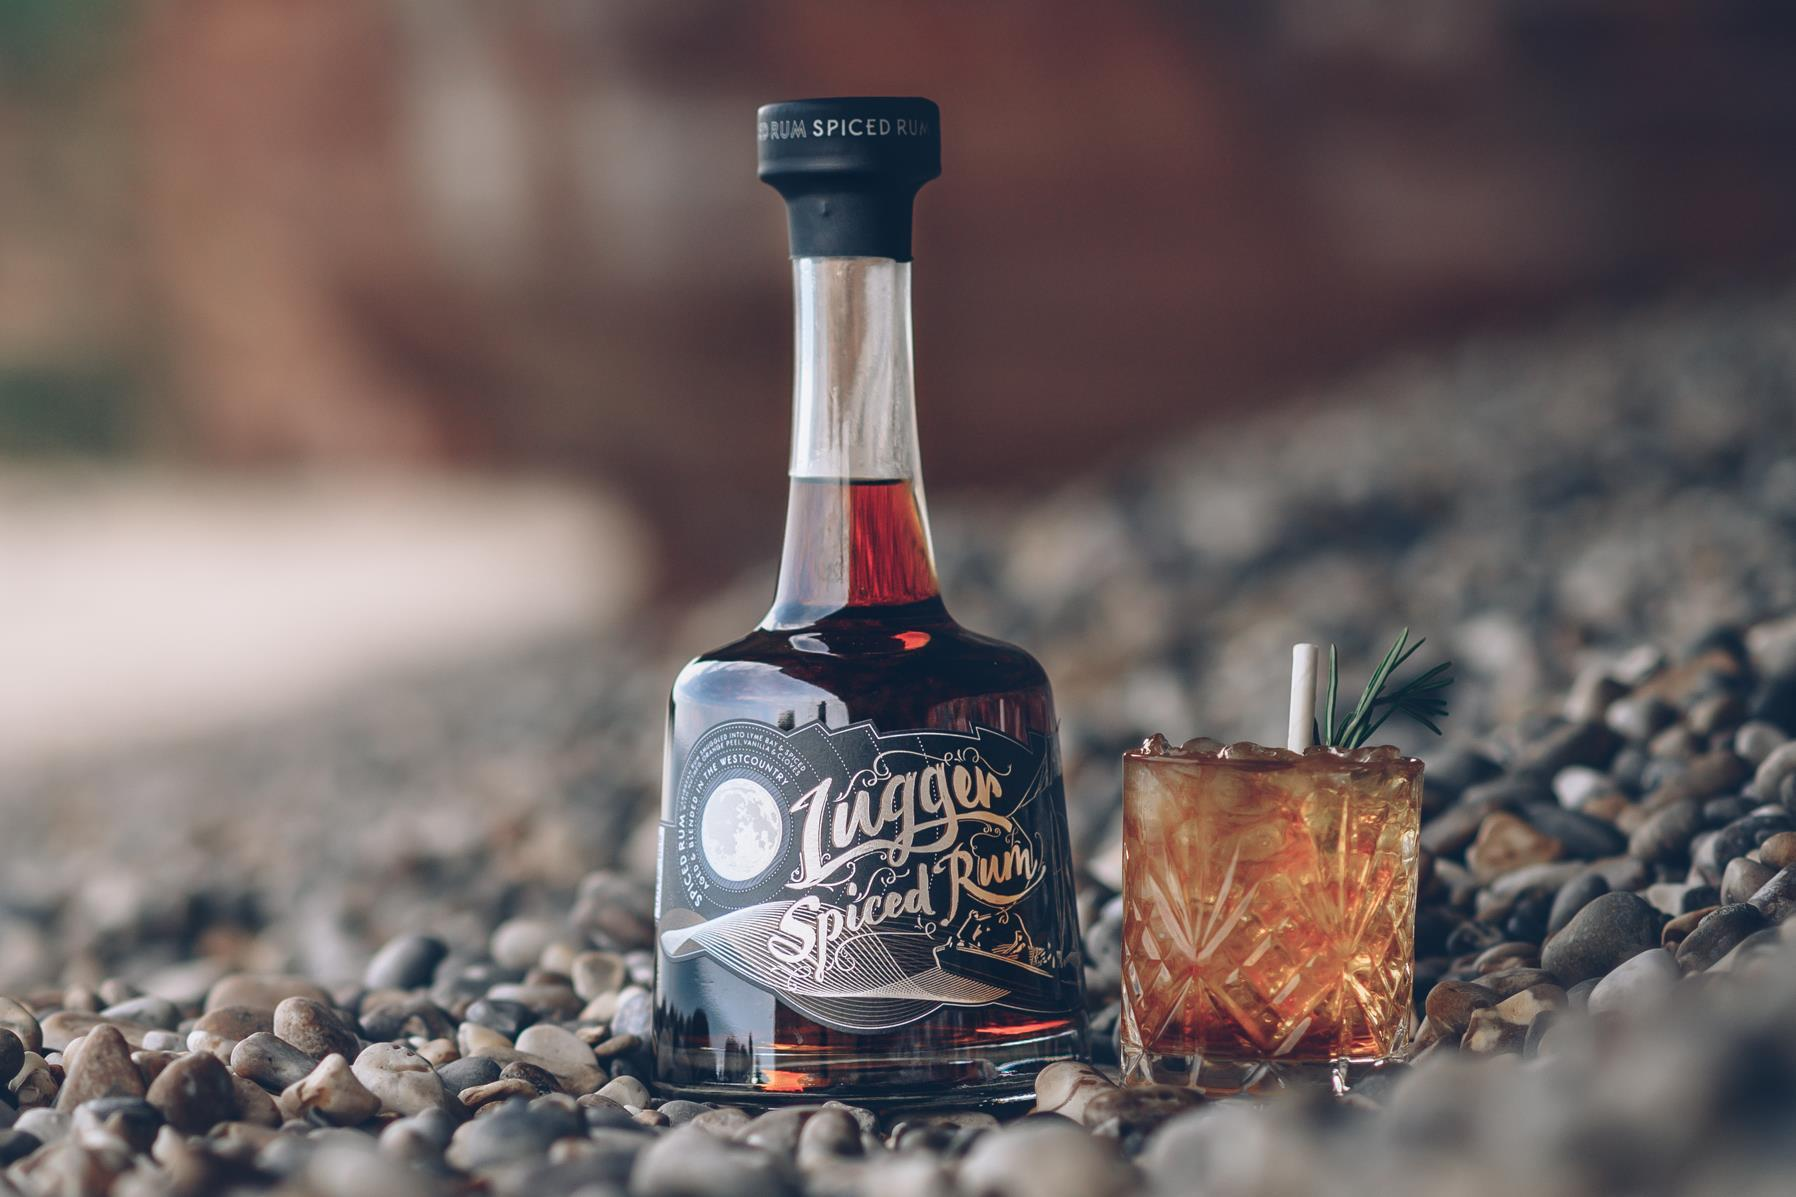 Lugger Rum wins a gold at the World Rum Awards | Food Press